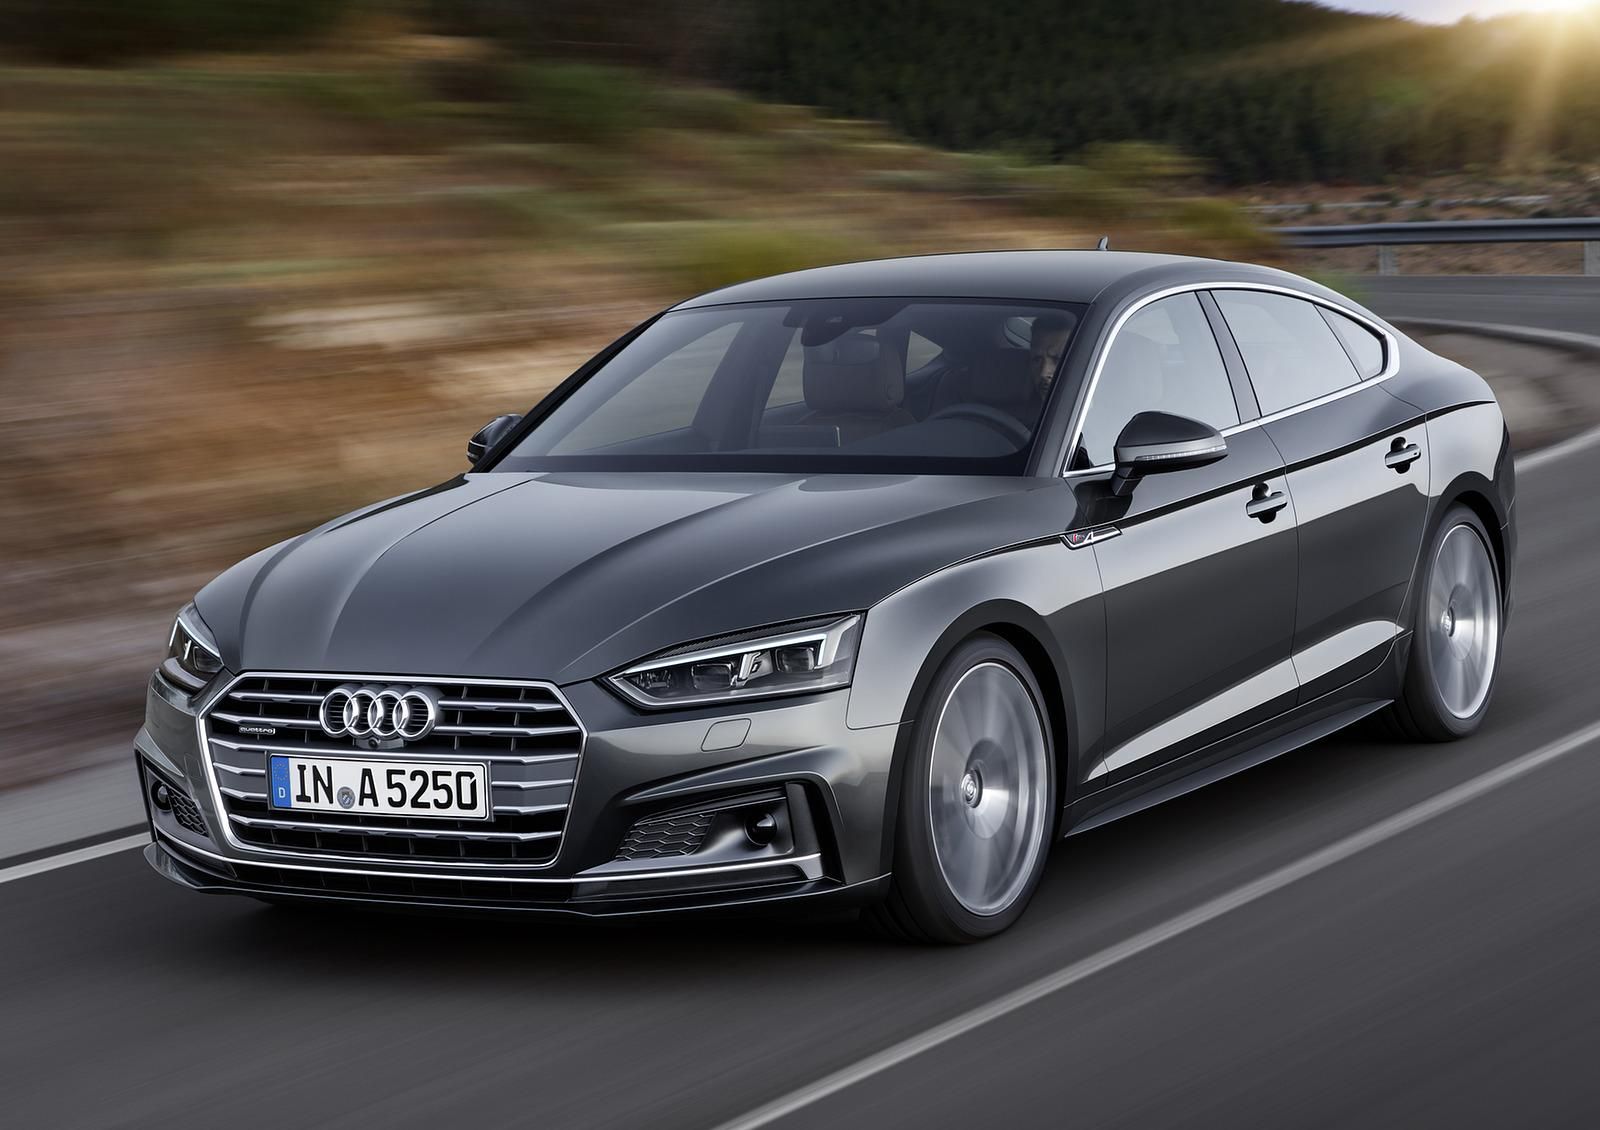 audi a5 - Audi A5 SPB 2.0 TDI 136 CV ULTRA BUSINESS